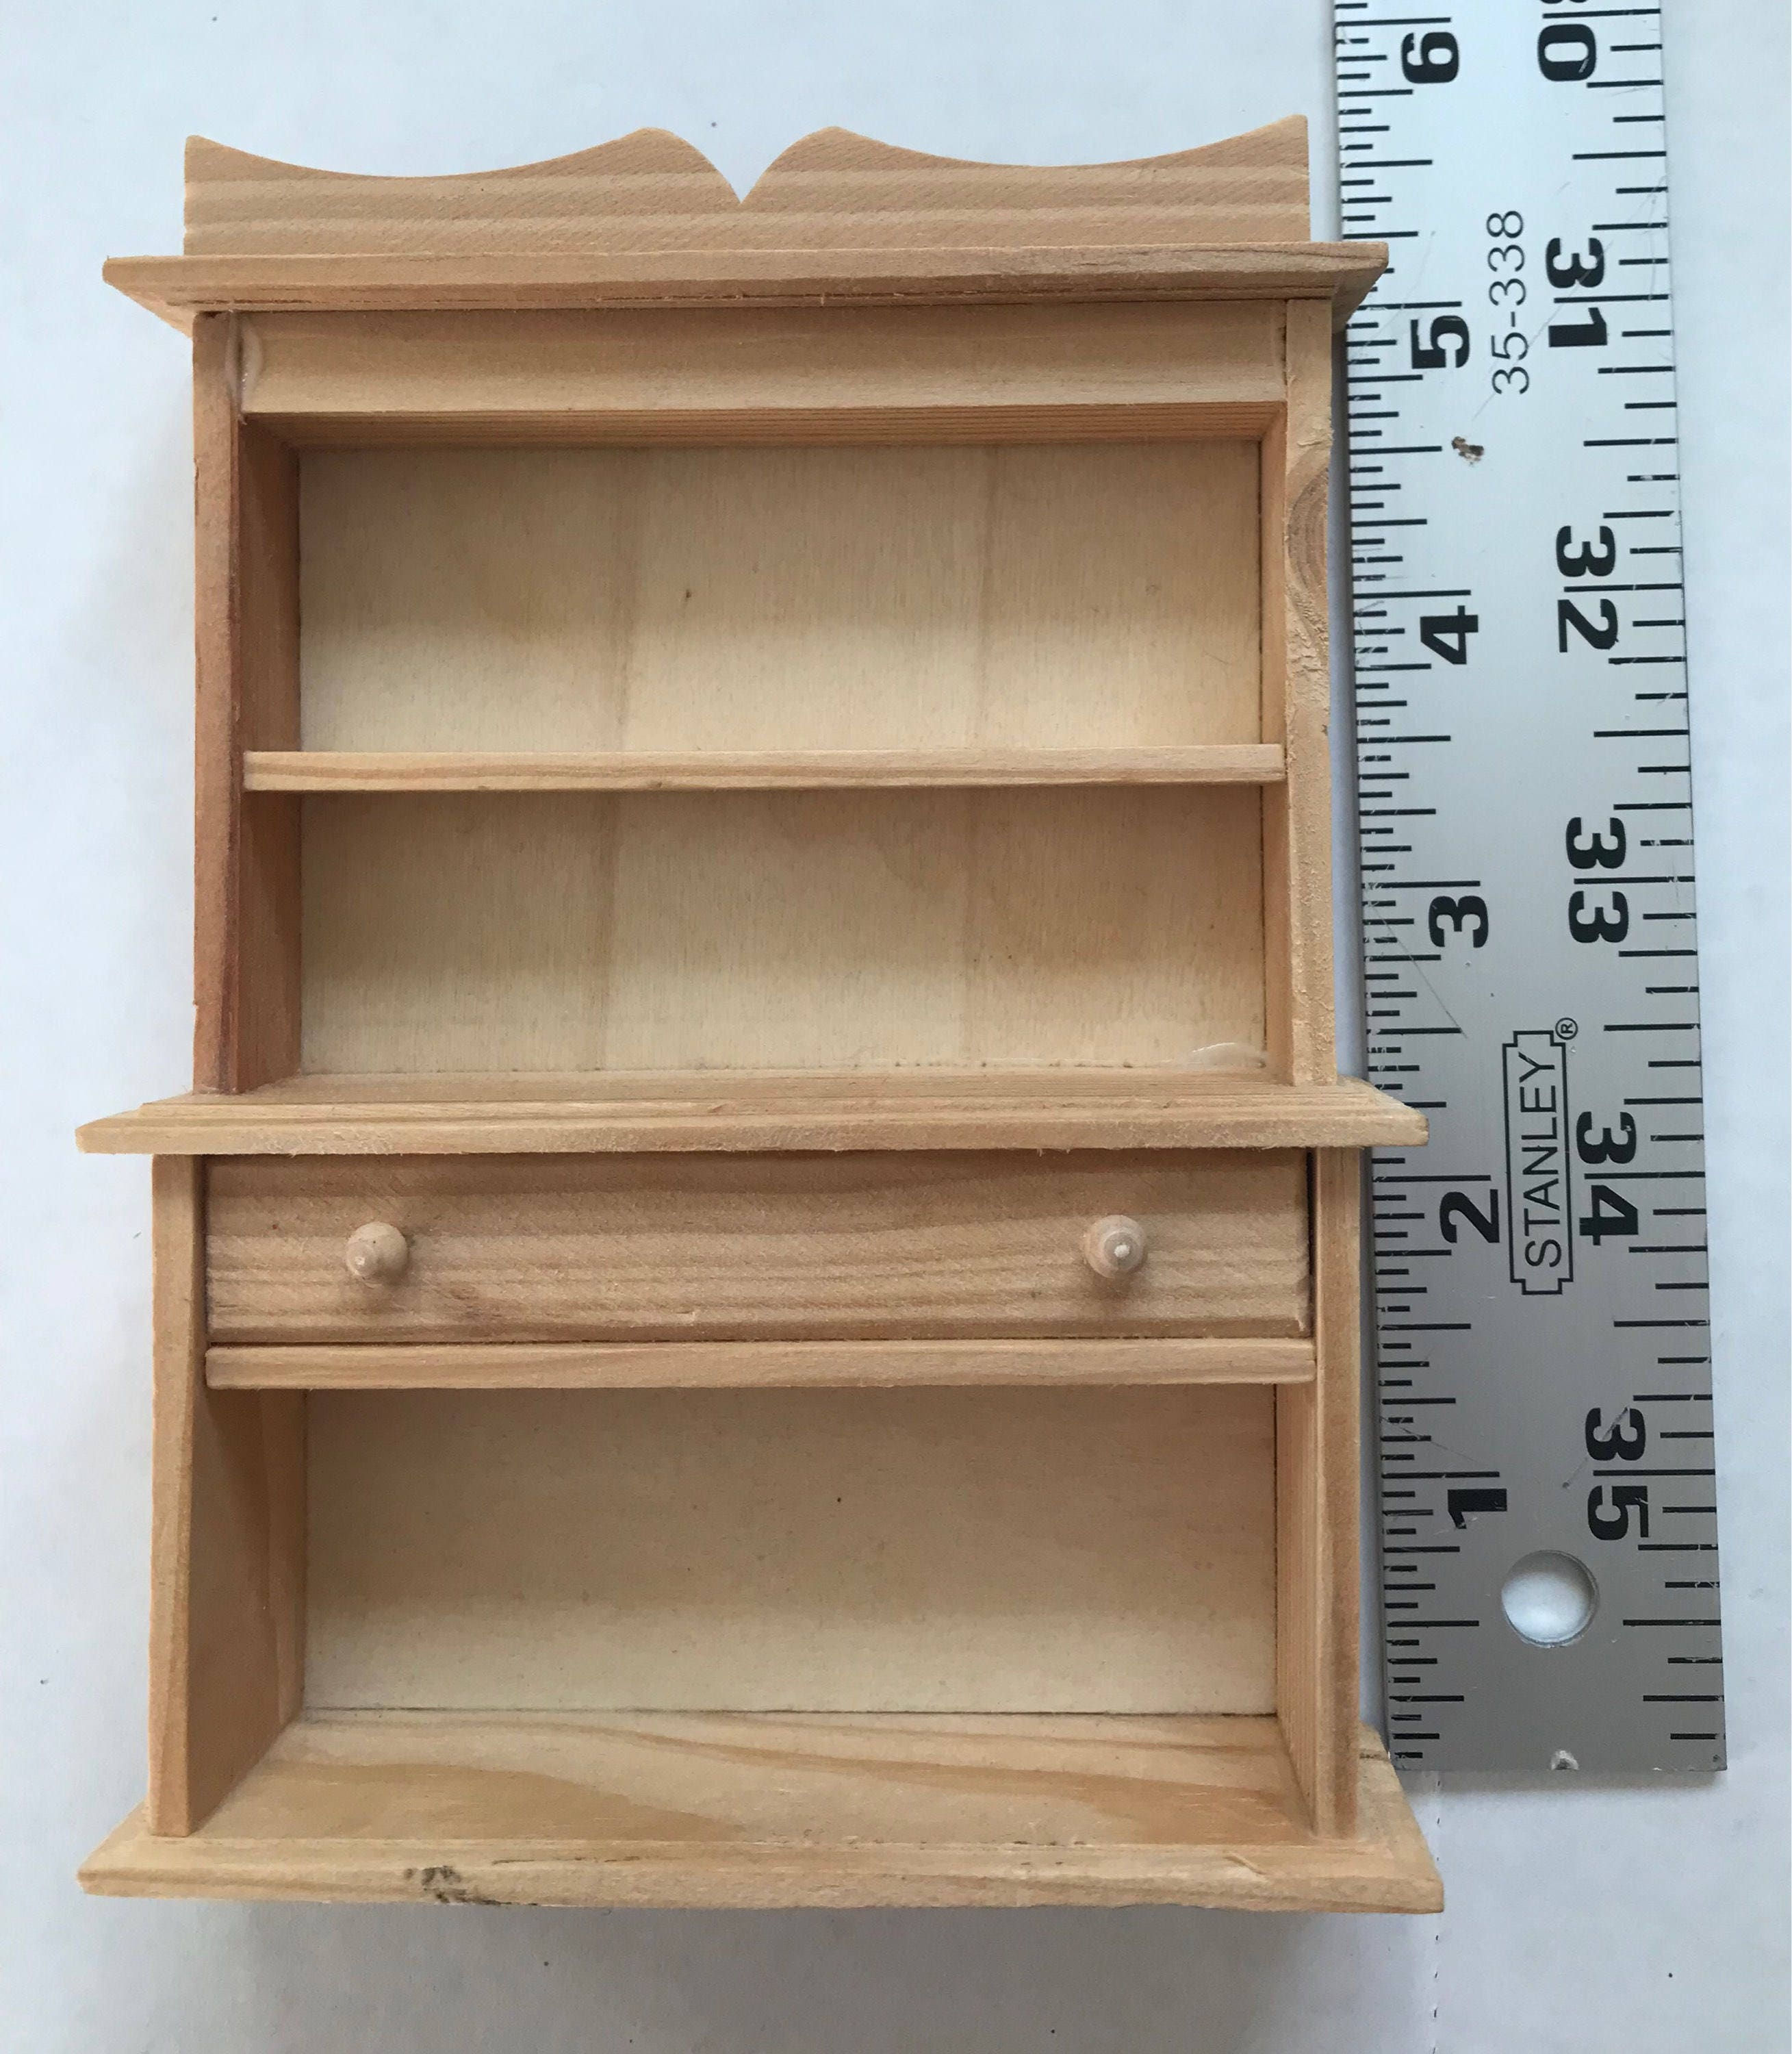 unfinished dollhouse furniture. + $4.00 Shipping Unfinished Dollhouse Furniture